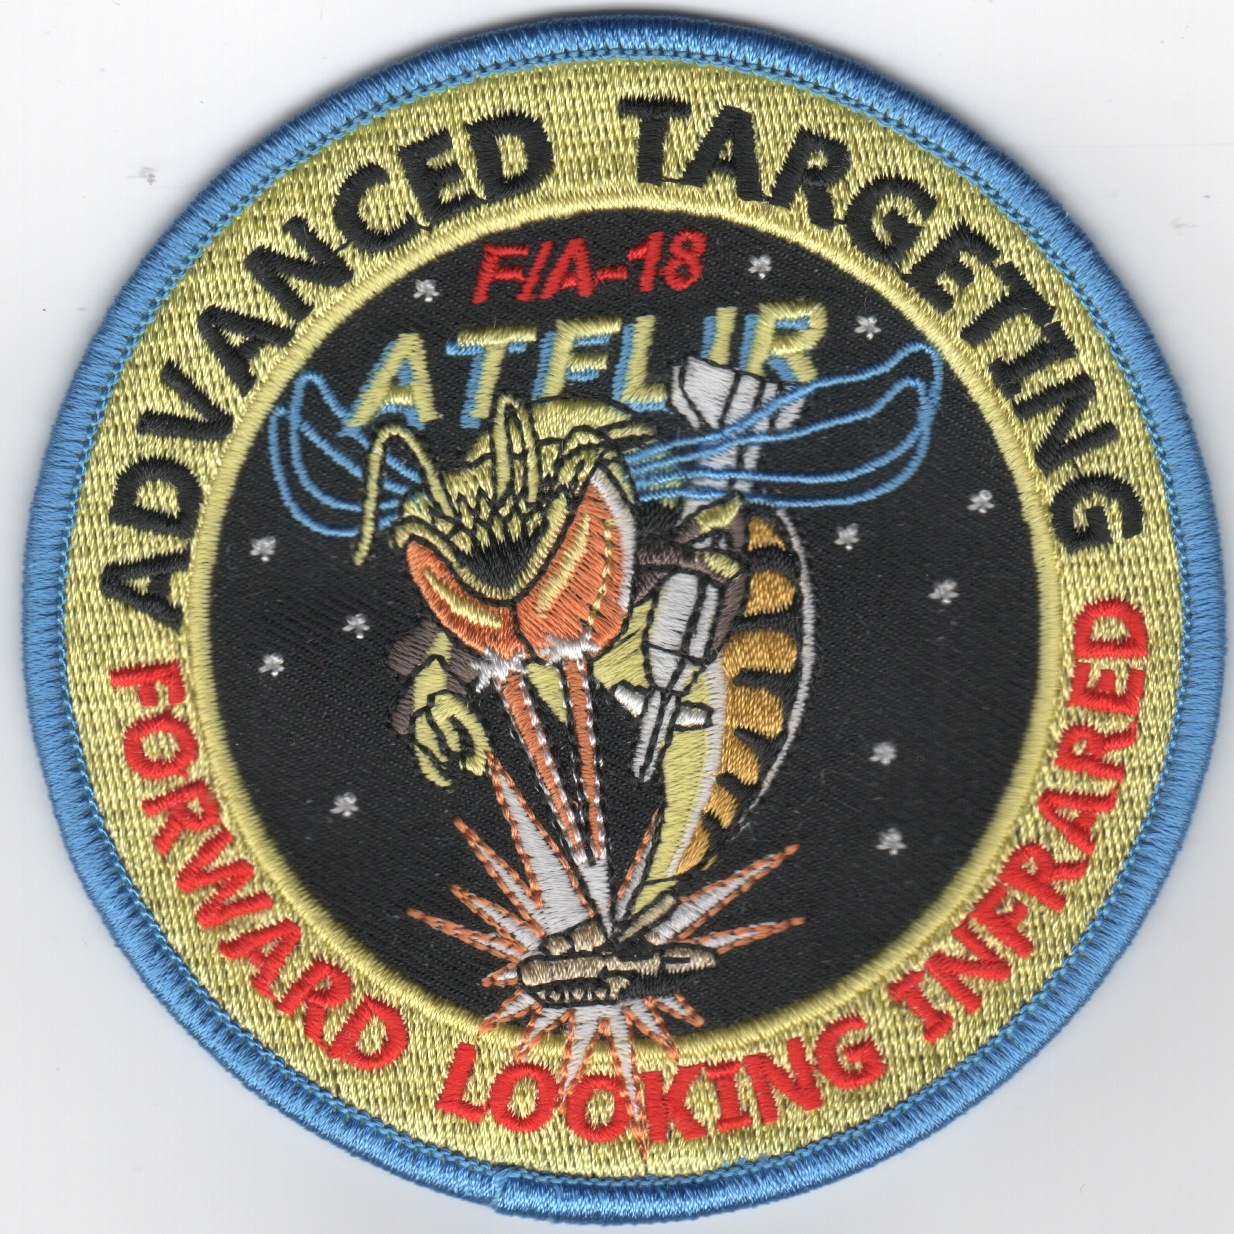 F/A-18 ATFLIR Patch